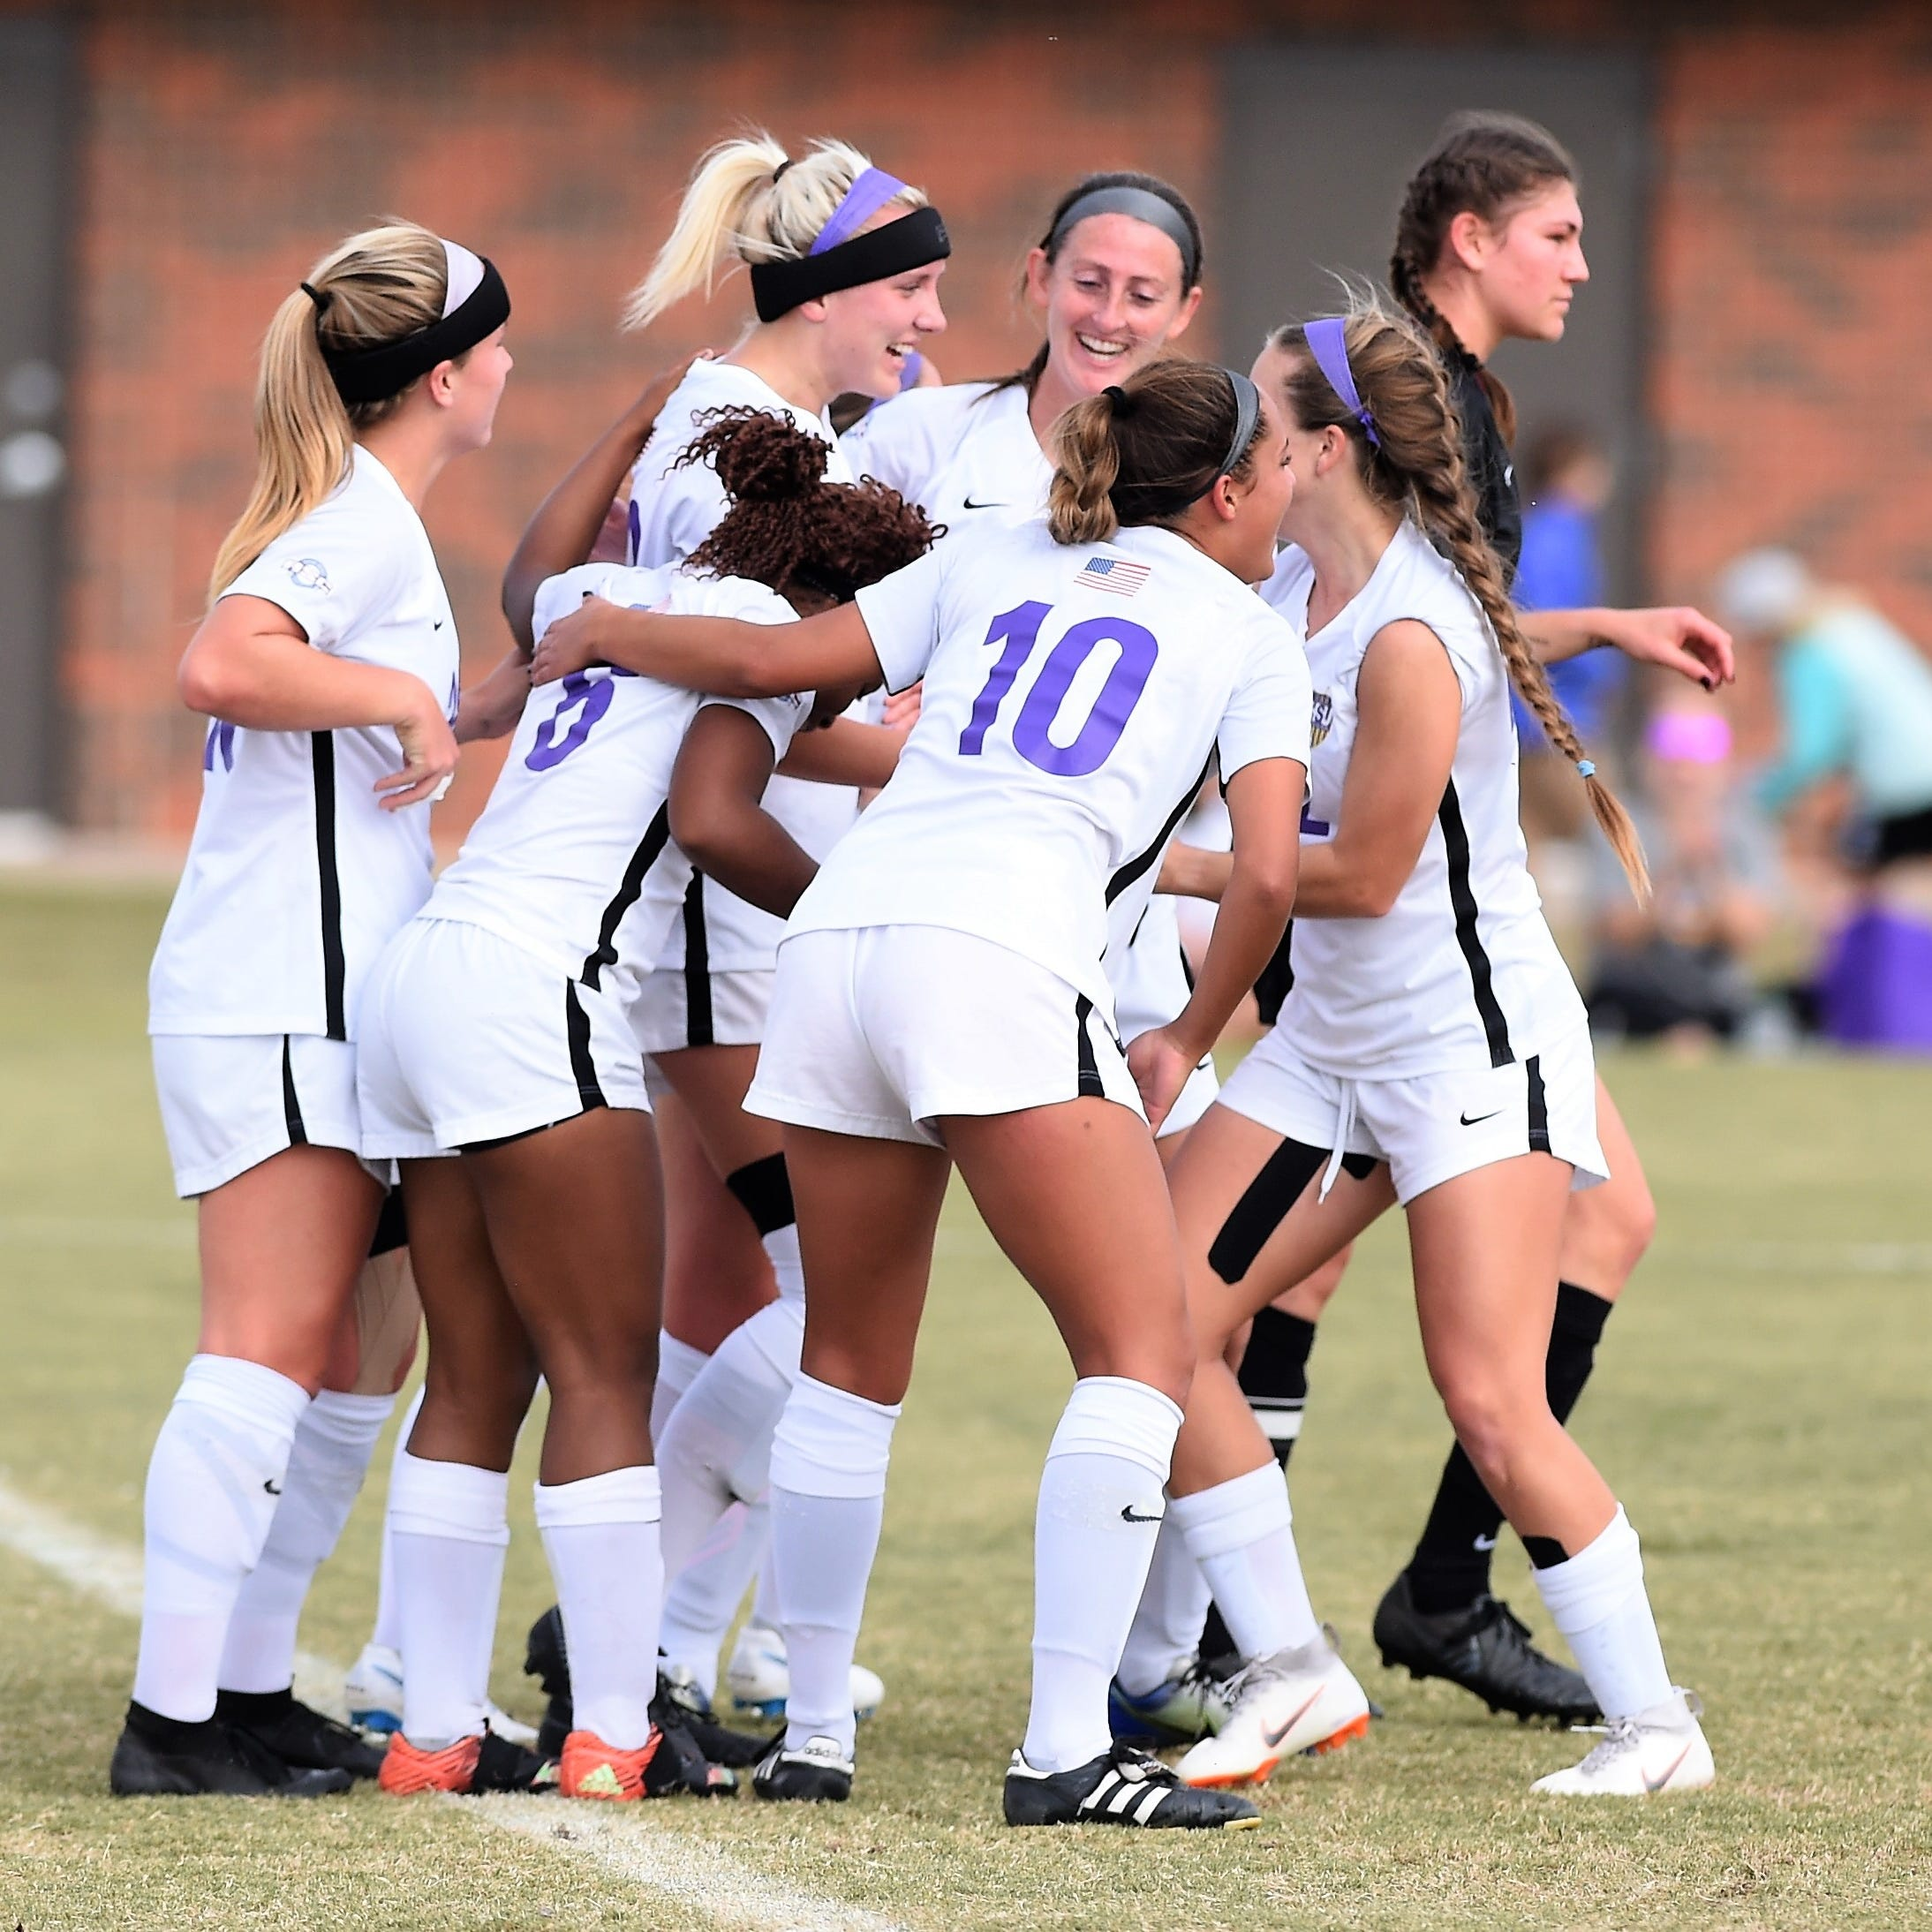 Hardin-Simmons defender Baylee Ford (23) is congratulated by teammates after scoring against Trinity in the second round of the NCAA Division III tournament at the HSU Soccer Complex on Sunday, Nov. 11, 2018.